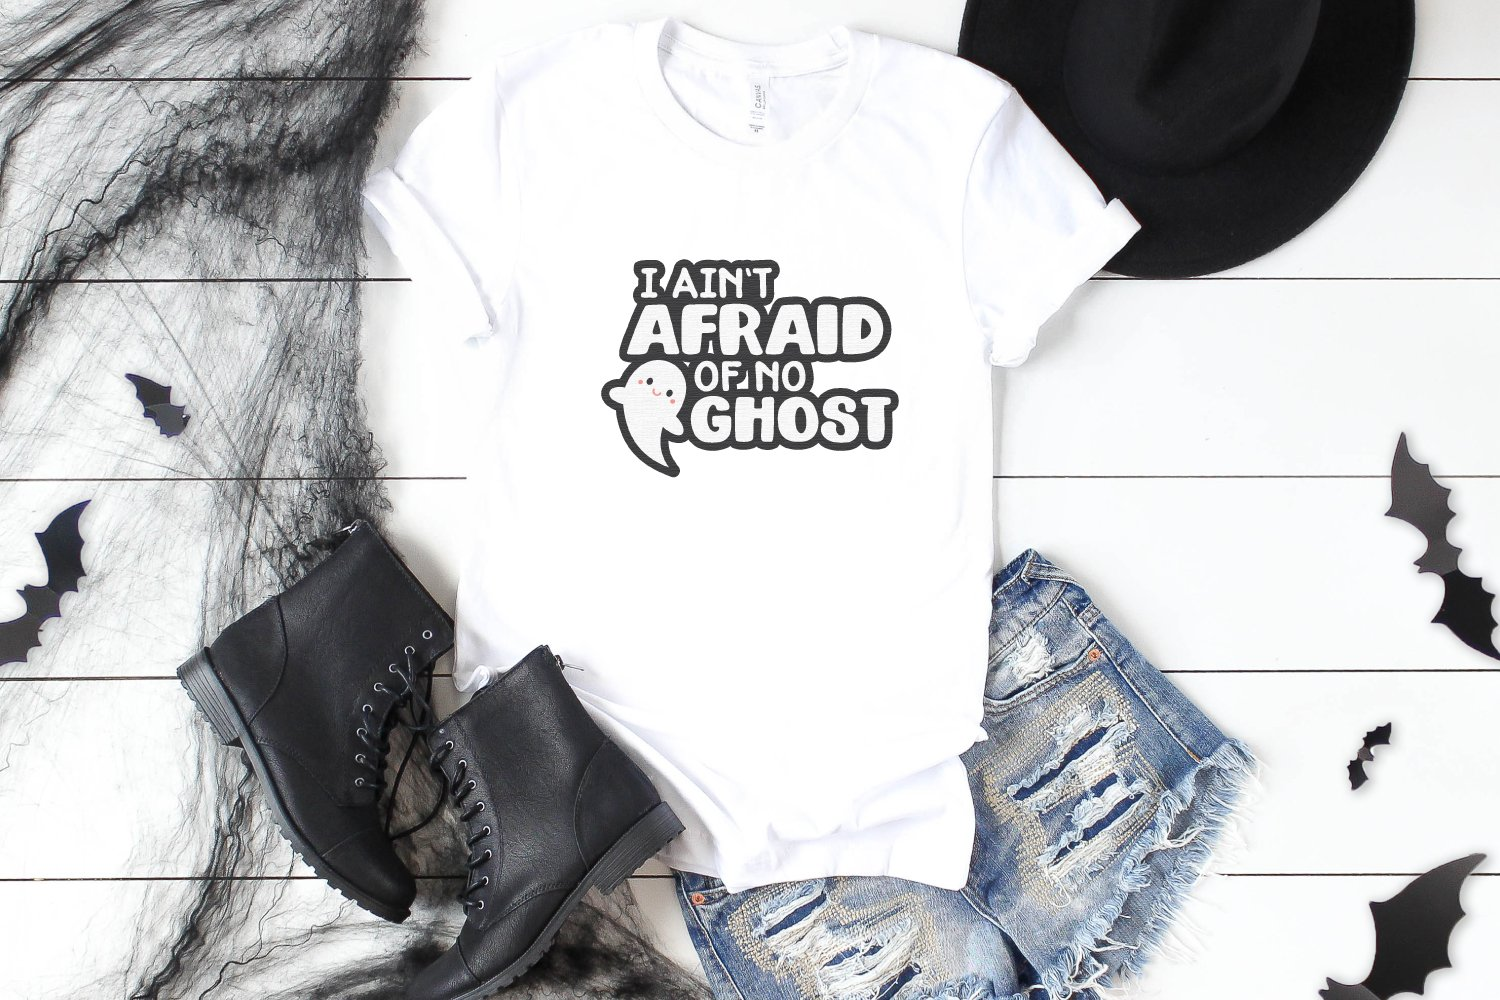 I Ain't Afraid of No Ghost t-shirt